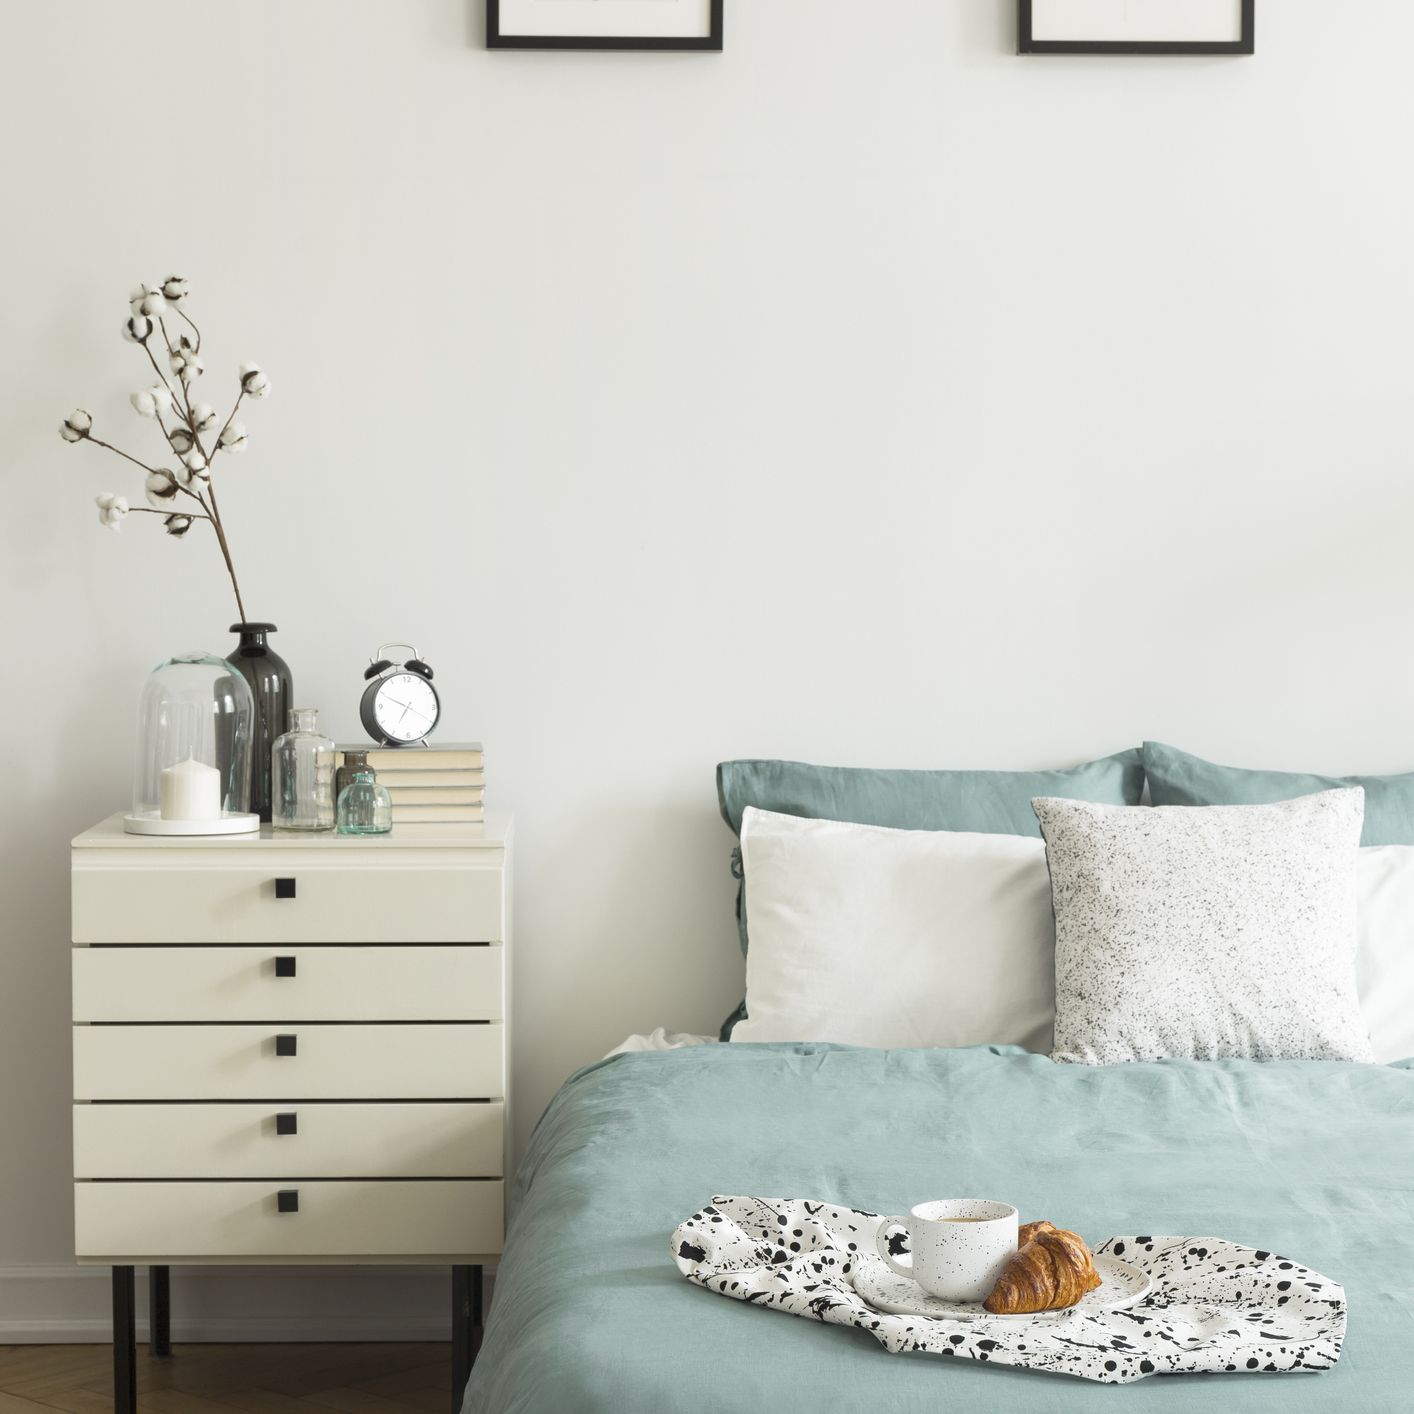 Real photo of white bedroom interior with breakfast placed on bed with pillows and pastel green bedclothes, two simple posters and bedside table with decor